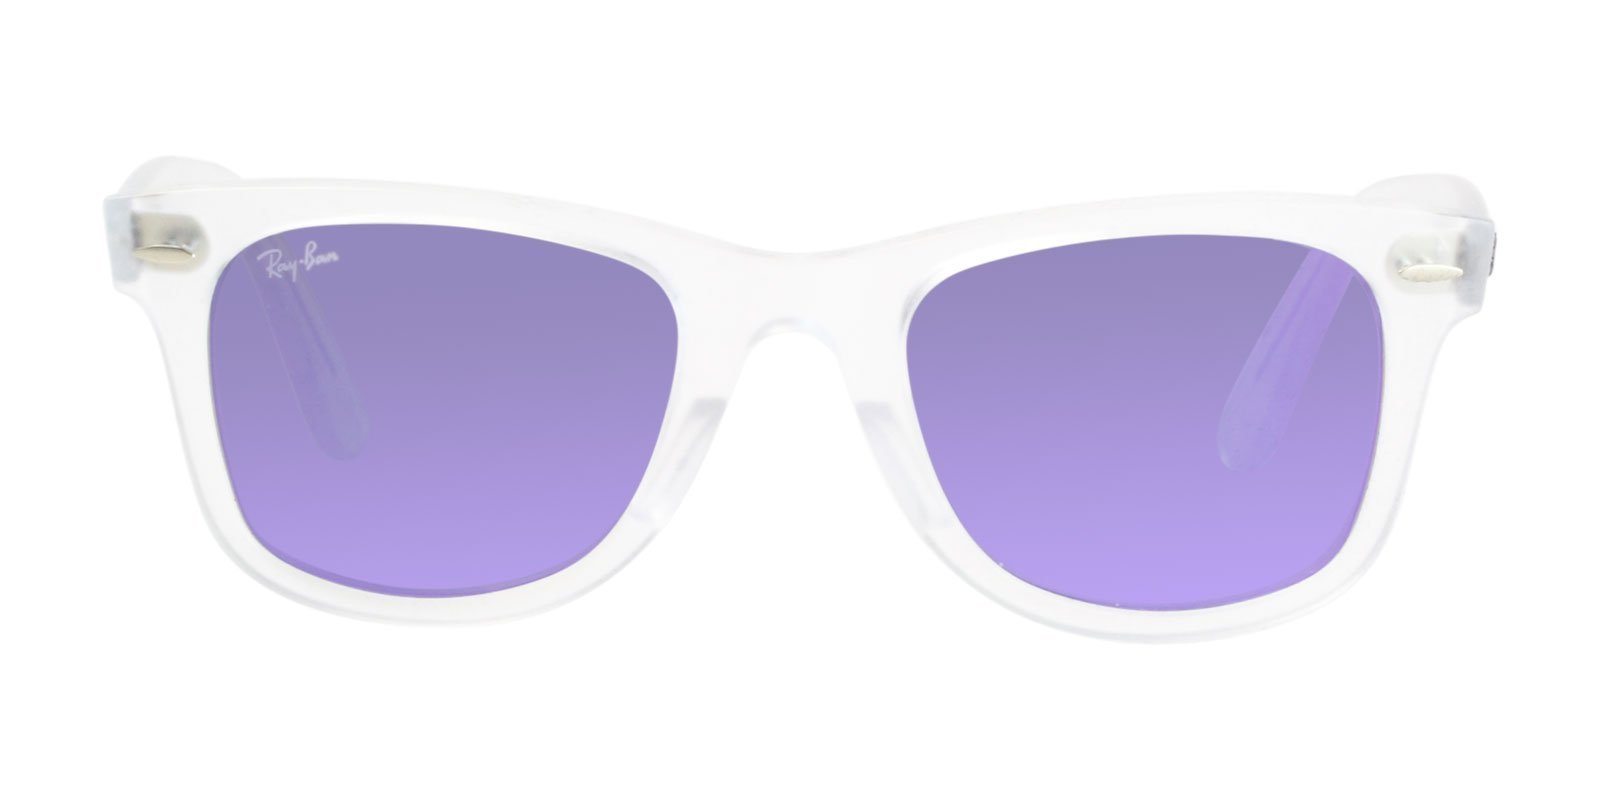 08b772b3af Ray Ban - RB4340 Clear - Purple sunglasses in 2018